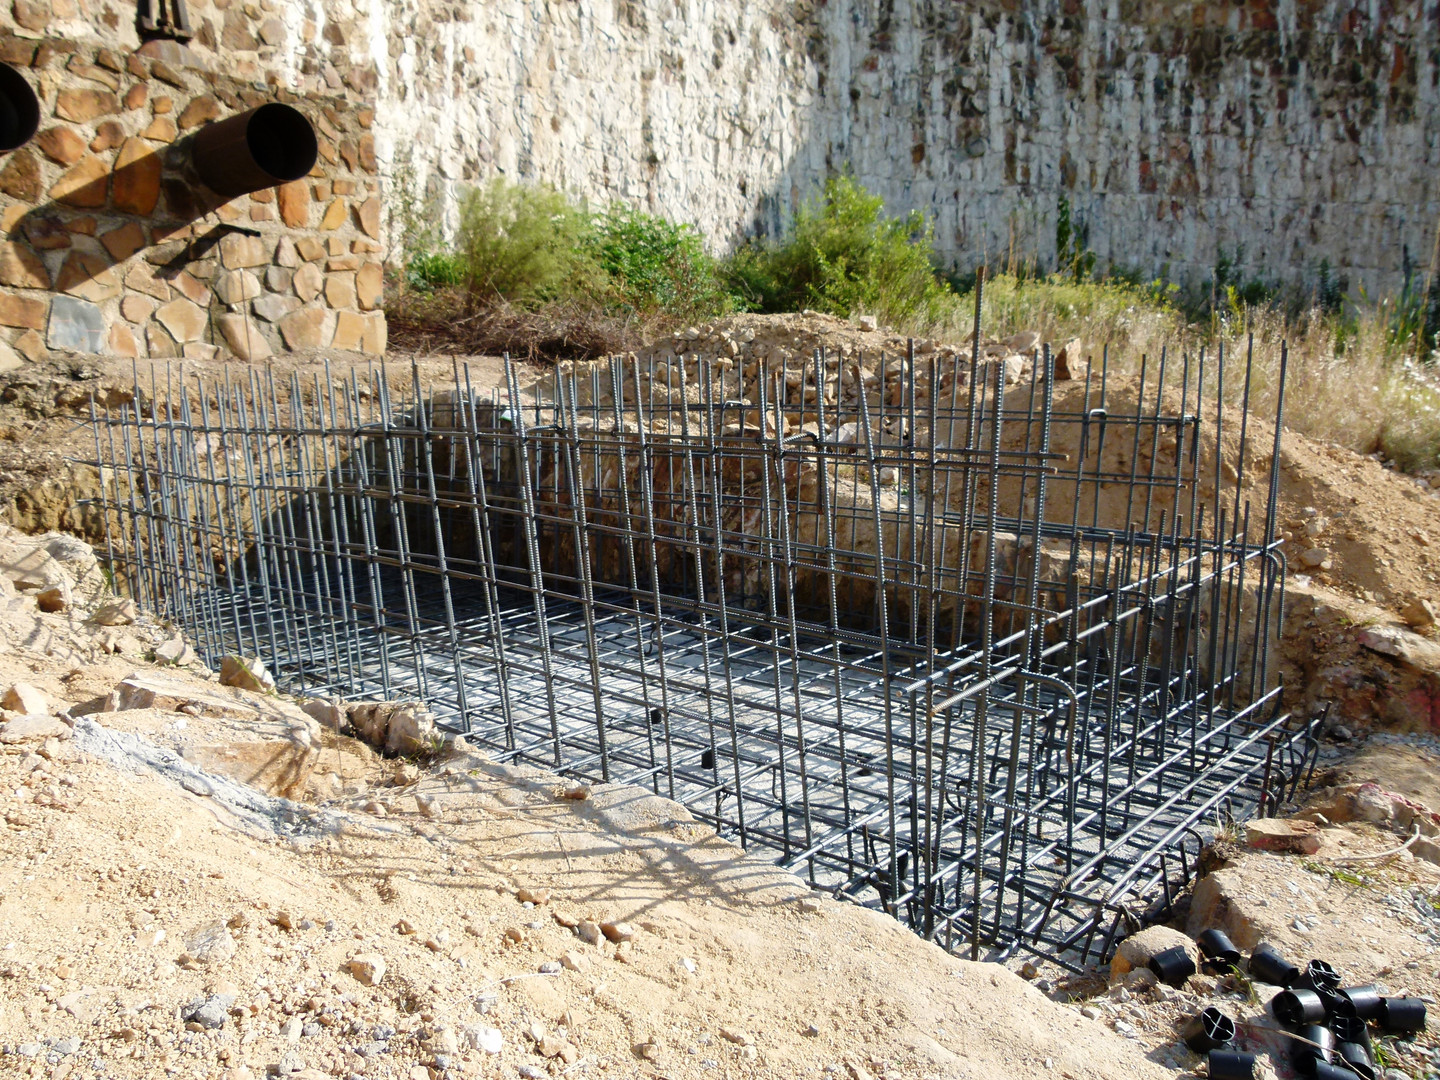 Blinding prepared and rebar for the base